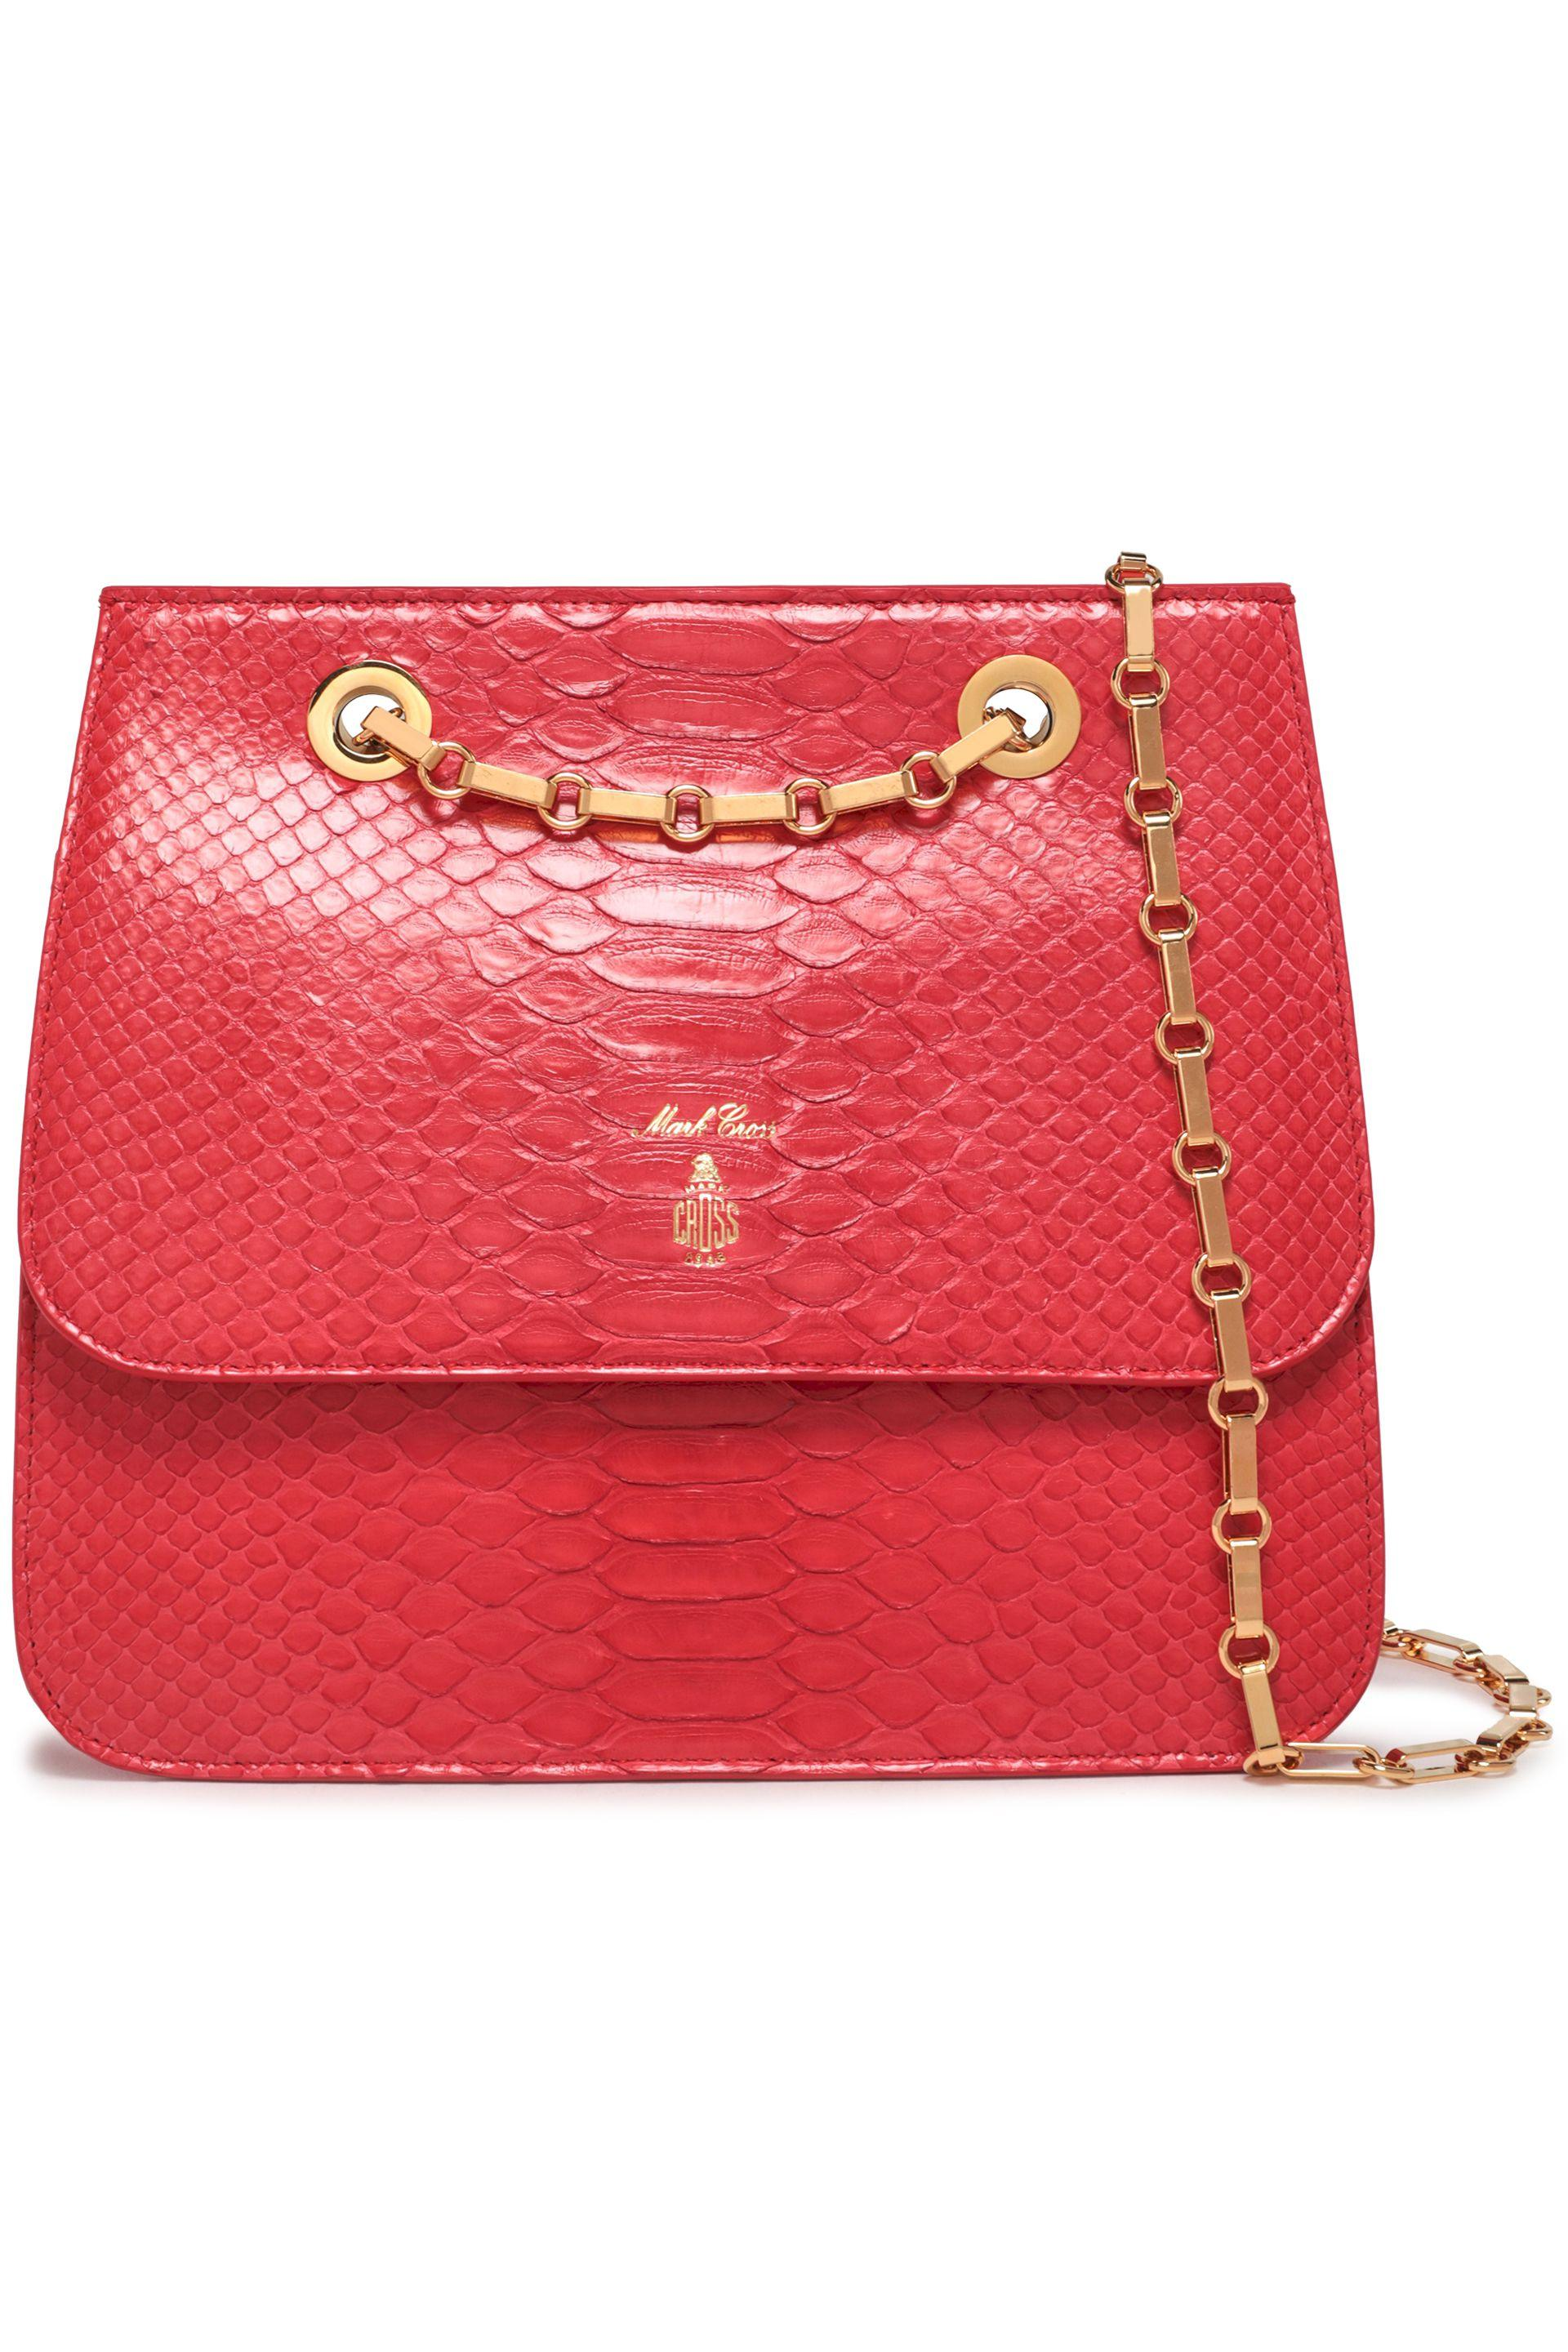 Mark Cross Woman Francis Python Shoulder Bag Red in Red - Lyst c20c9133dad42